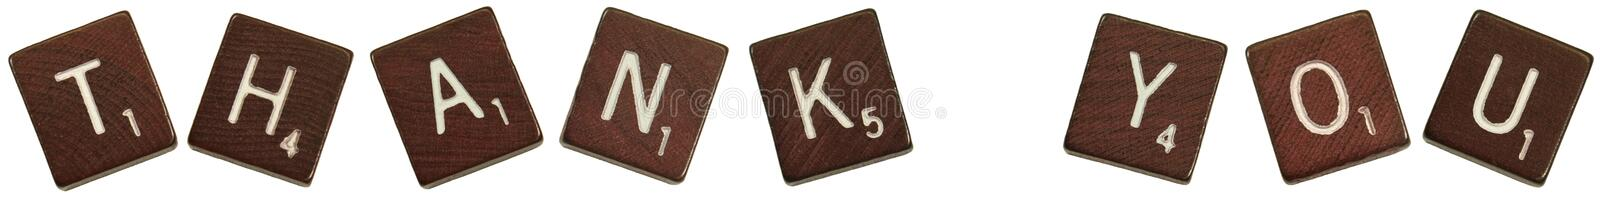 """Thank you. Isolated photo of scrabble letters saying, """"Thank you royalty free stock photos"""